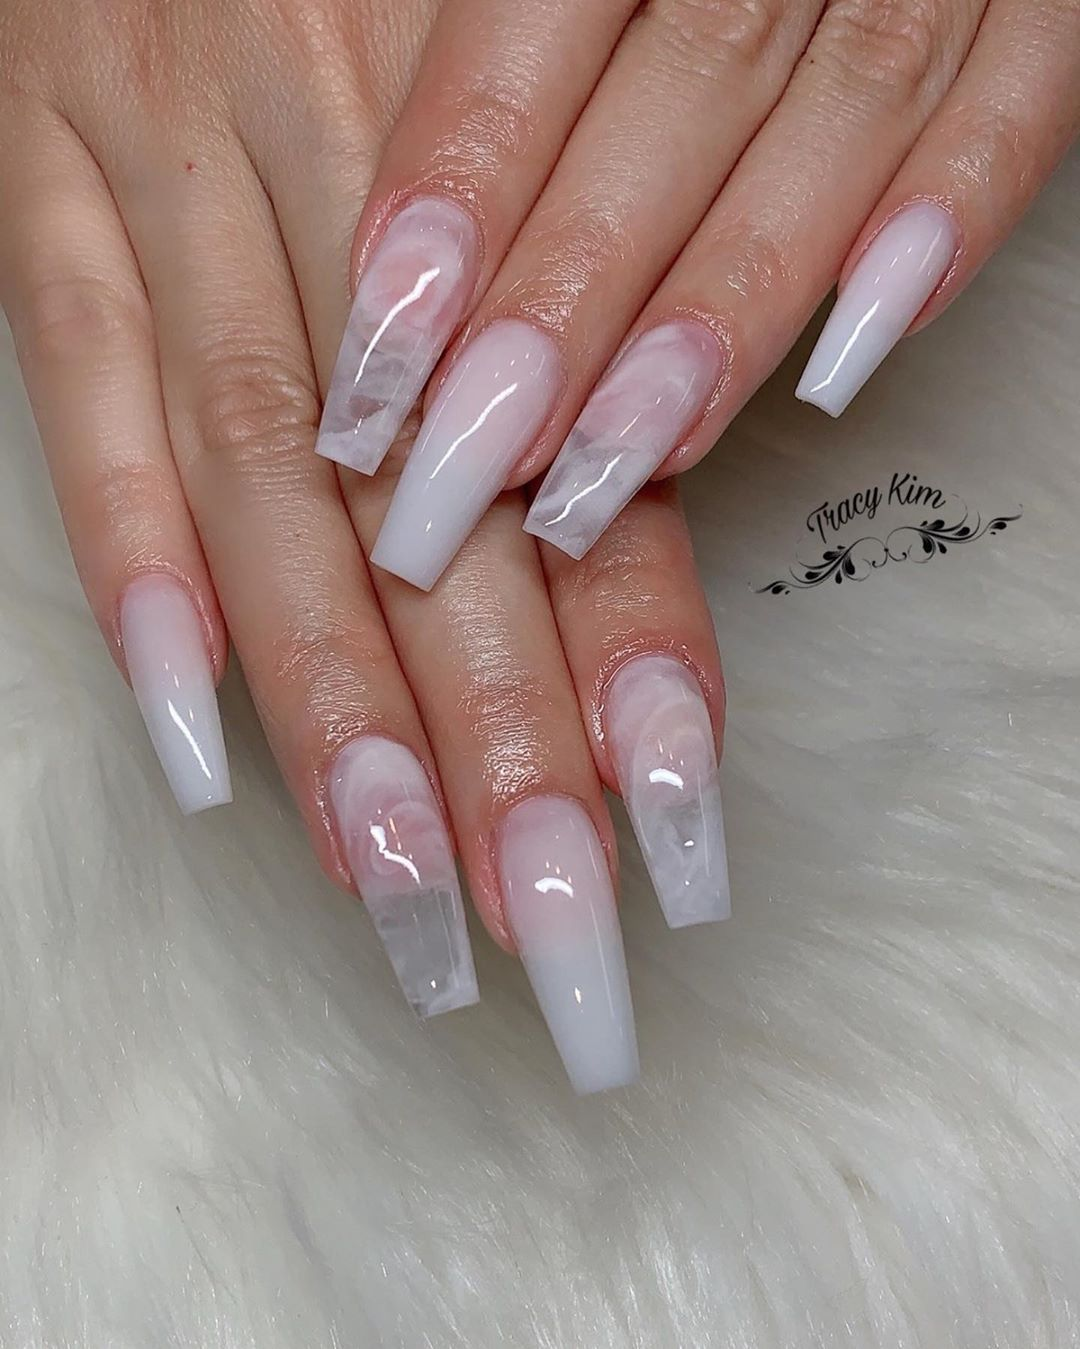 White Clear Marble What Do You Think Nailpro Nailpolish Naildesigns Nails Coffinna Clear Acrylic Nails Coffin Nails Designs Best Acrylic Nails